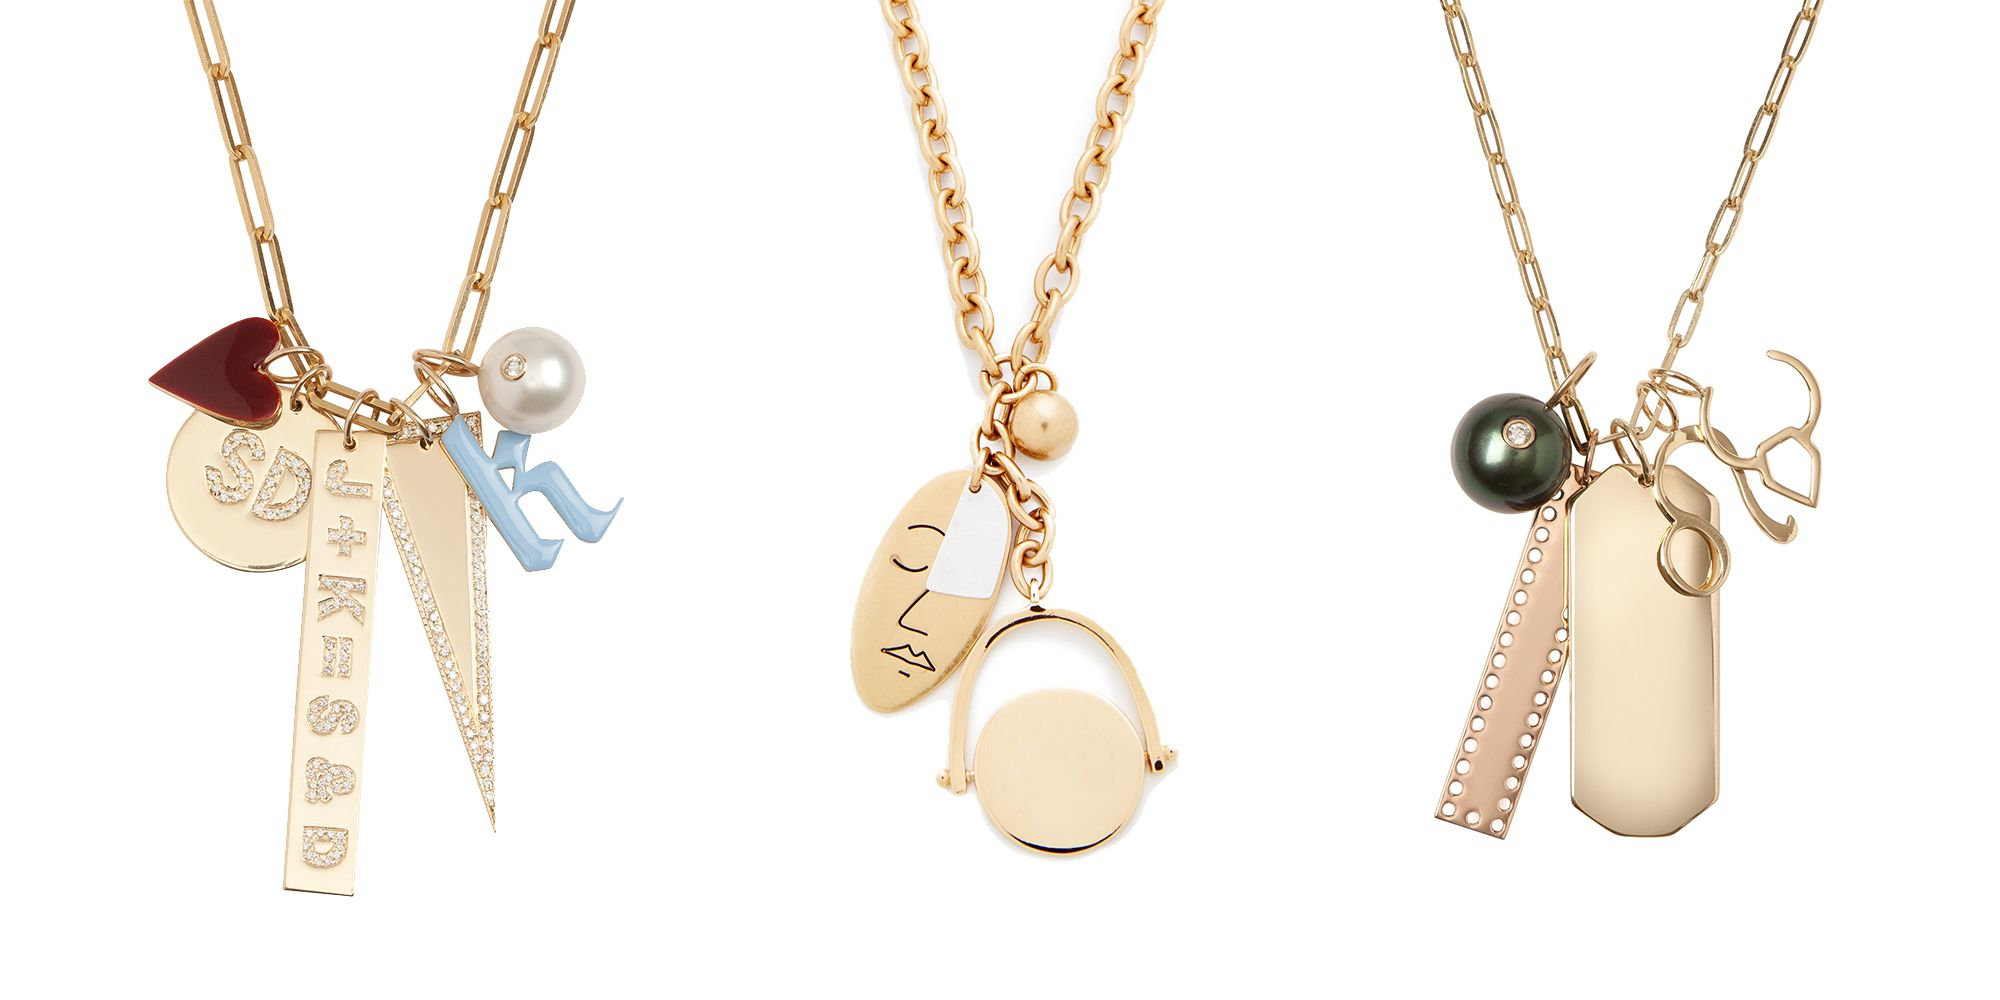 d952015e4c579 14 Charm Necklaces to Wear Every Day